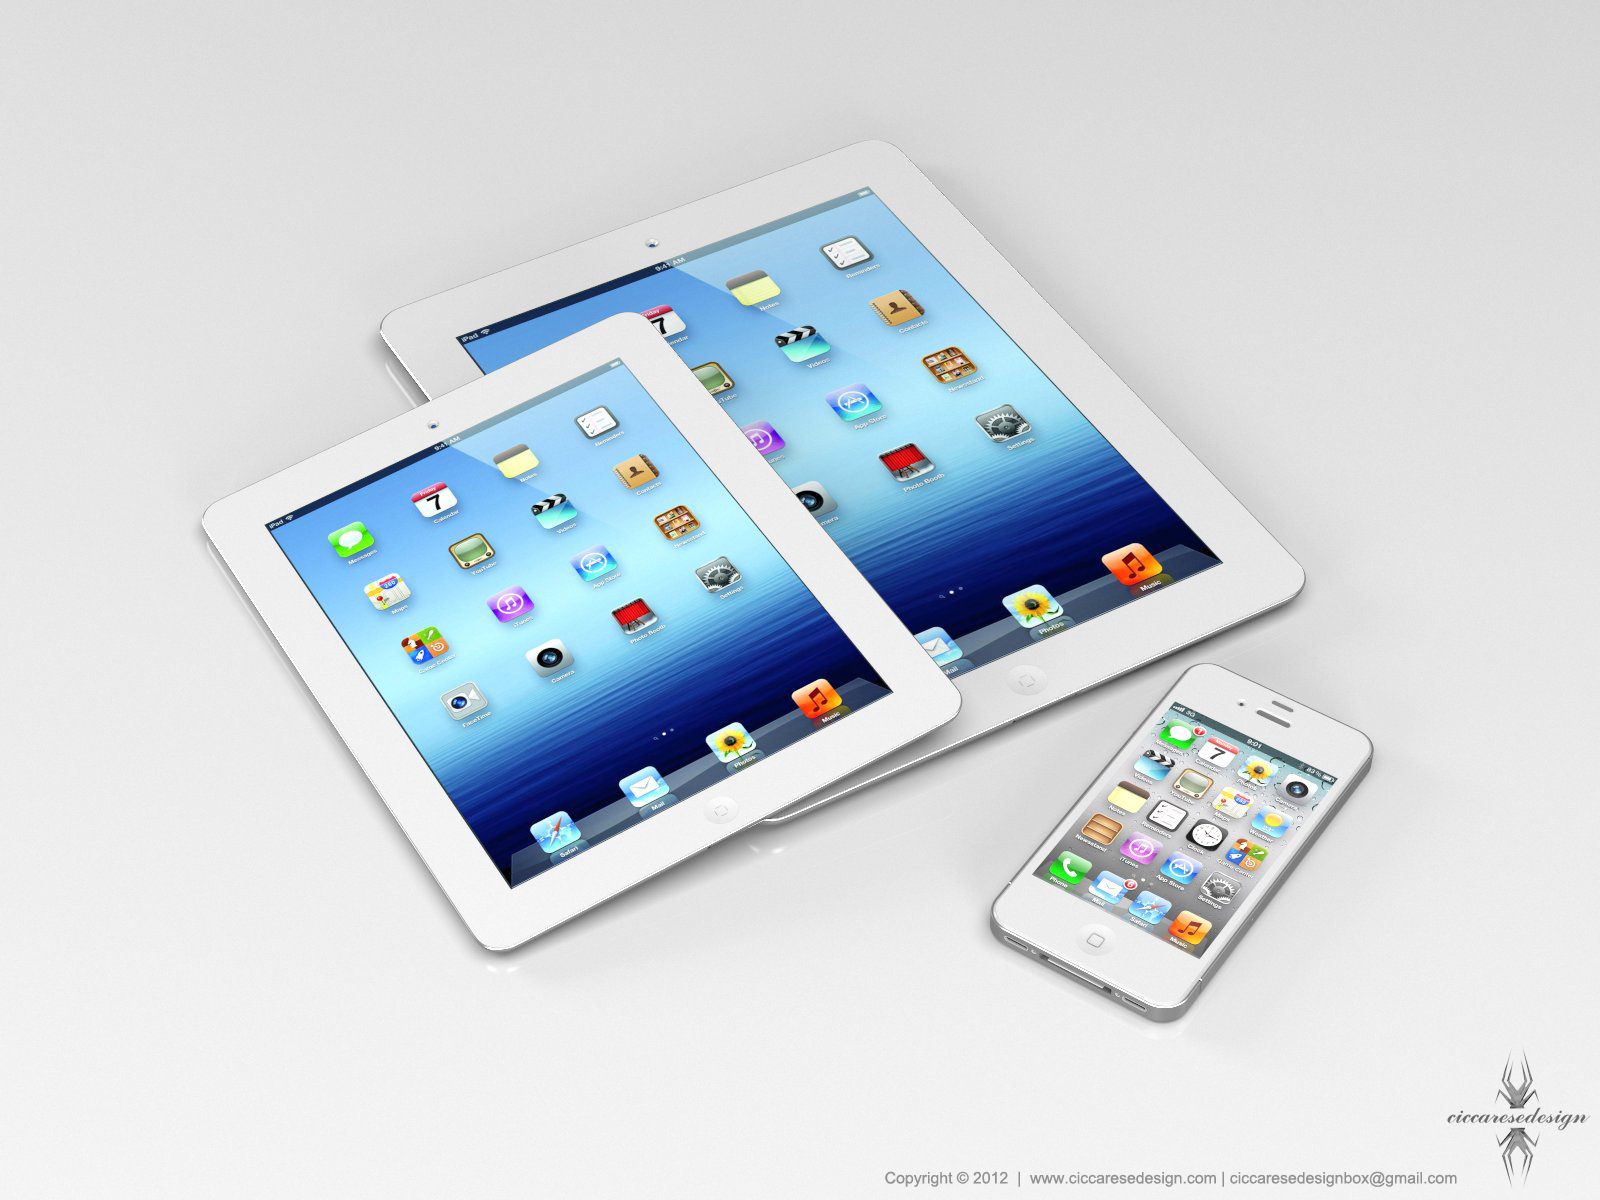 Mockup de iPad mini com iPhone